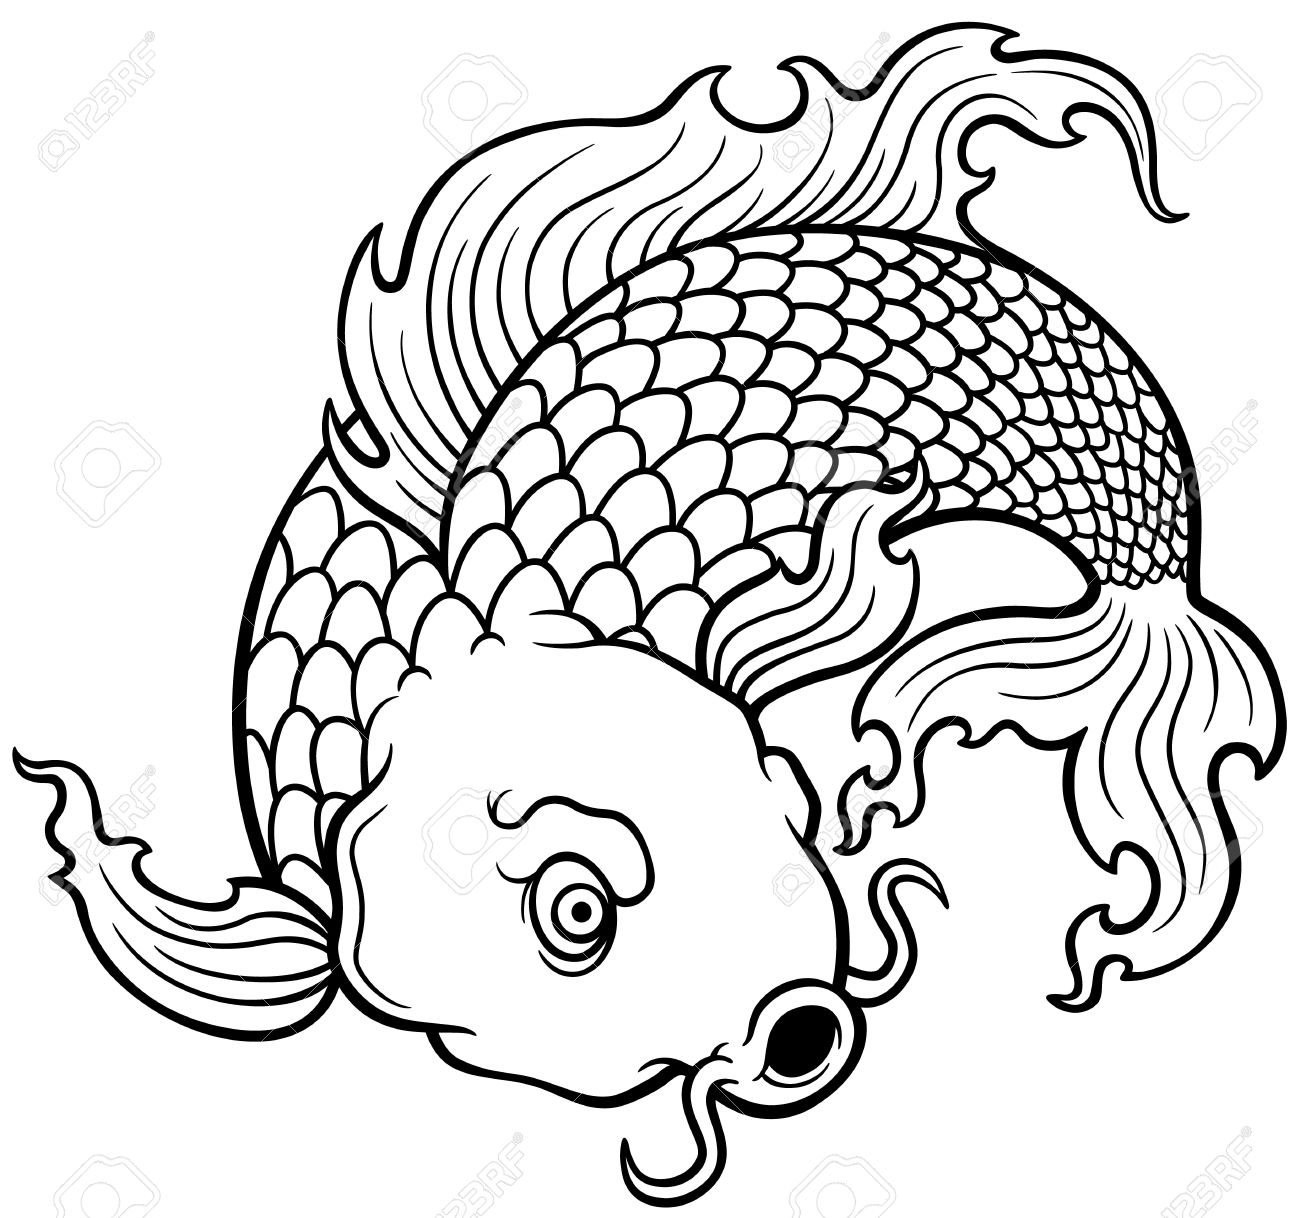 vector illustration of koi fish coloring book royalty free